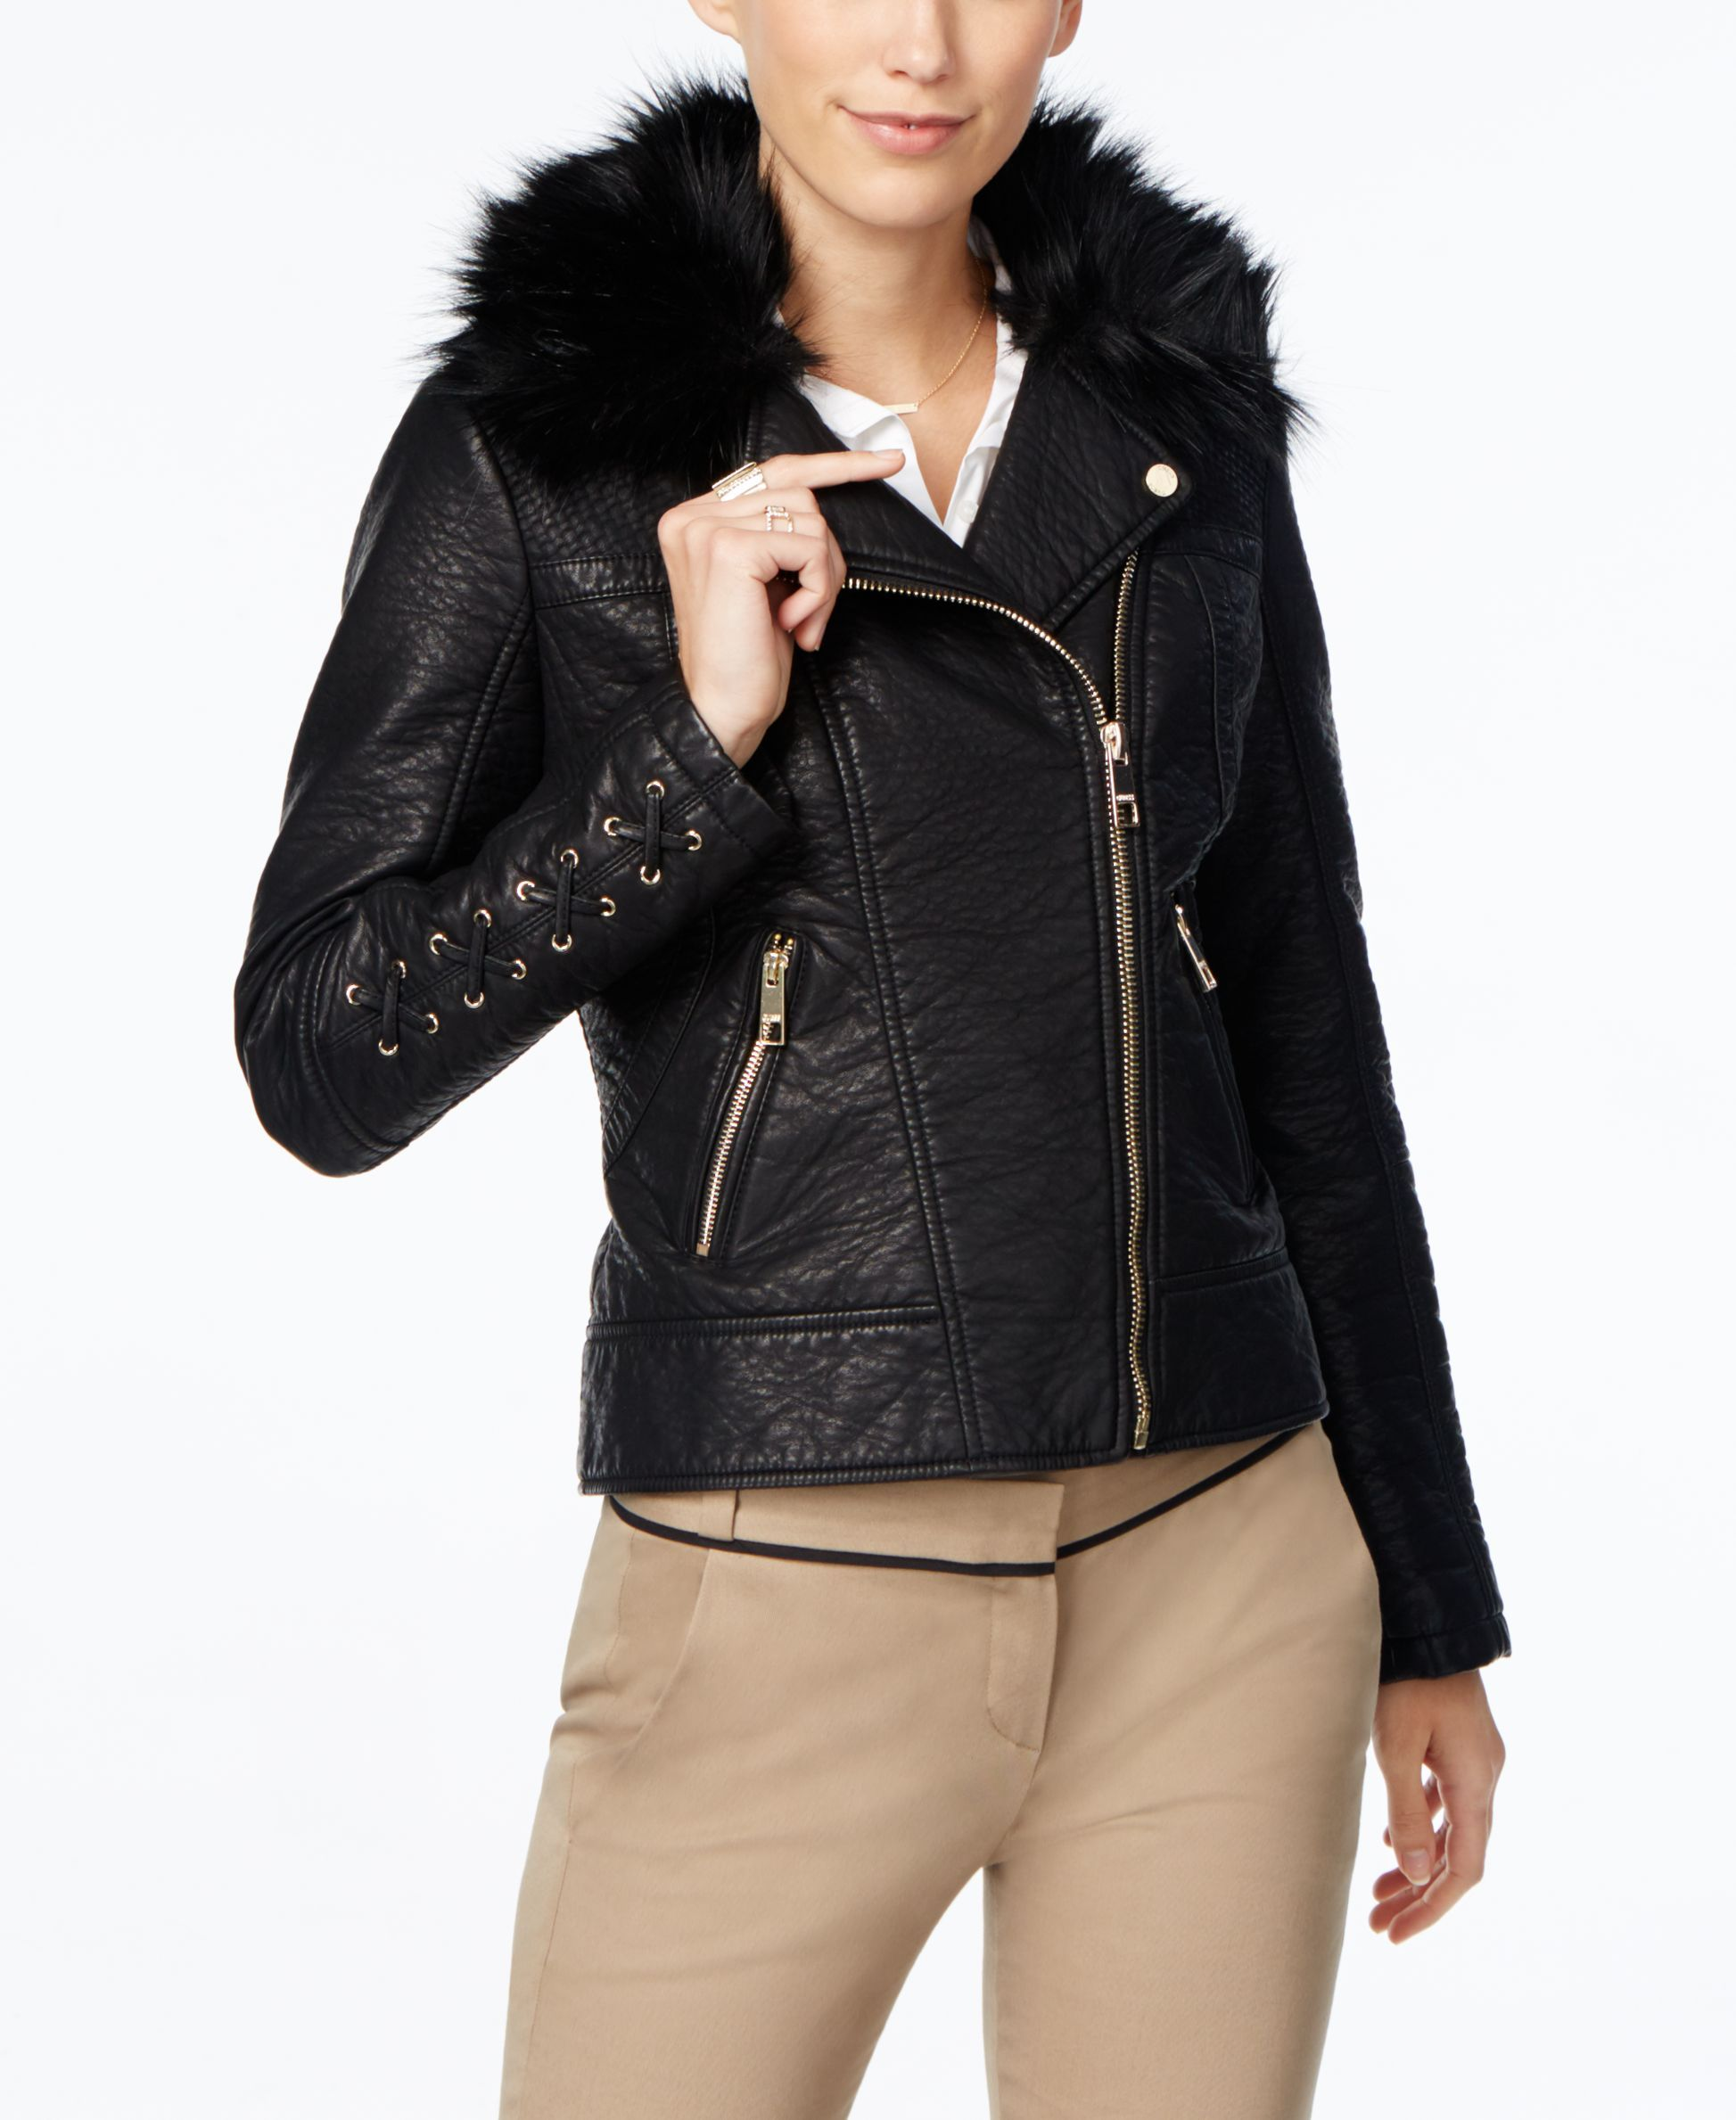 A fauxfur collar luxuriously completes the look of this